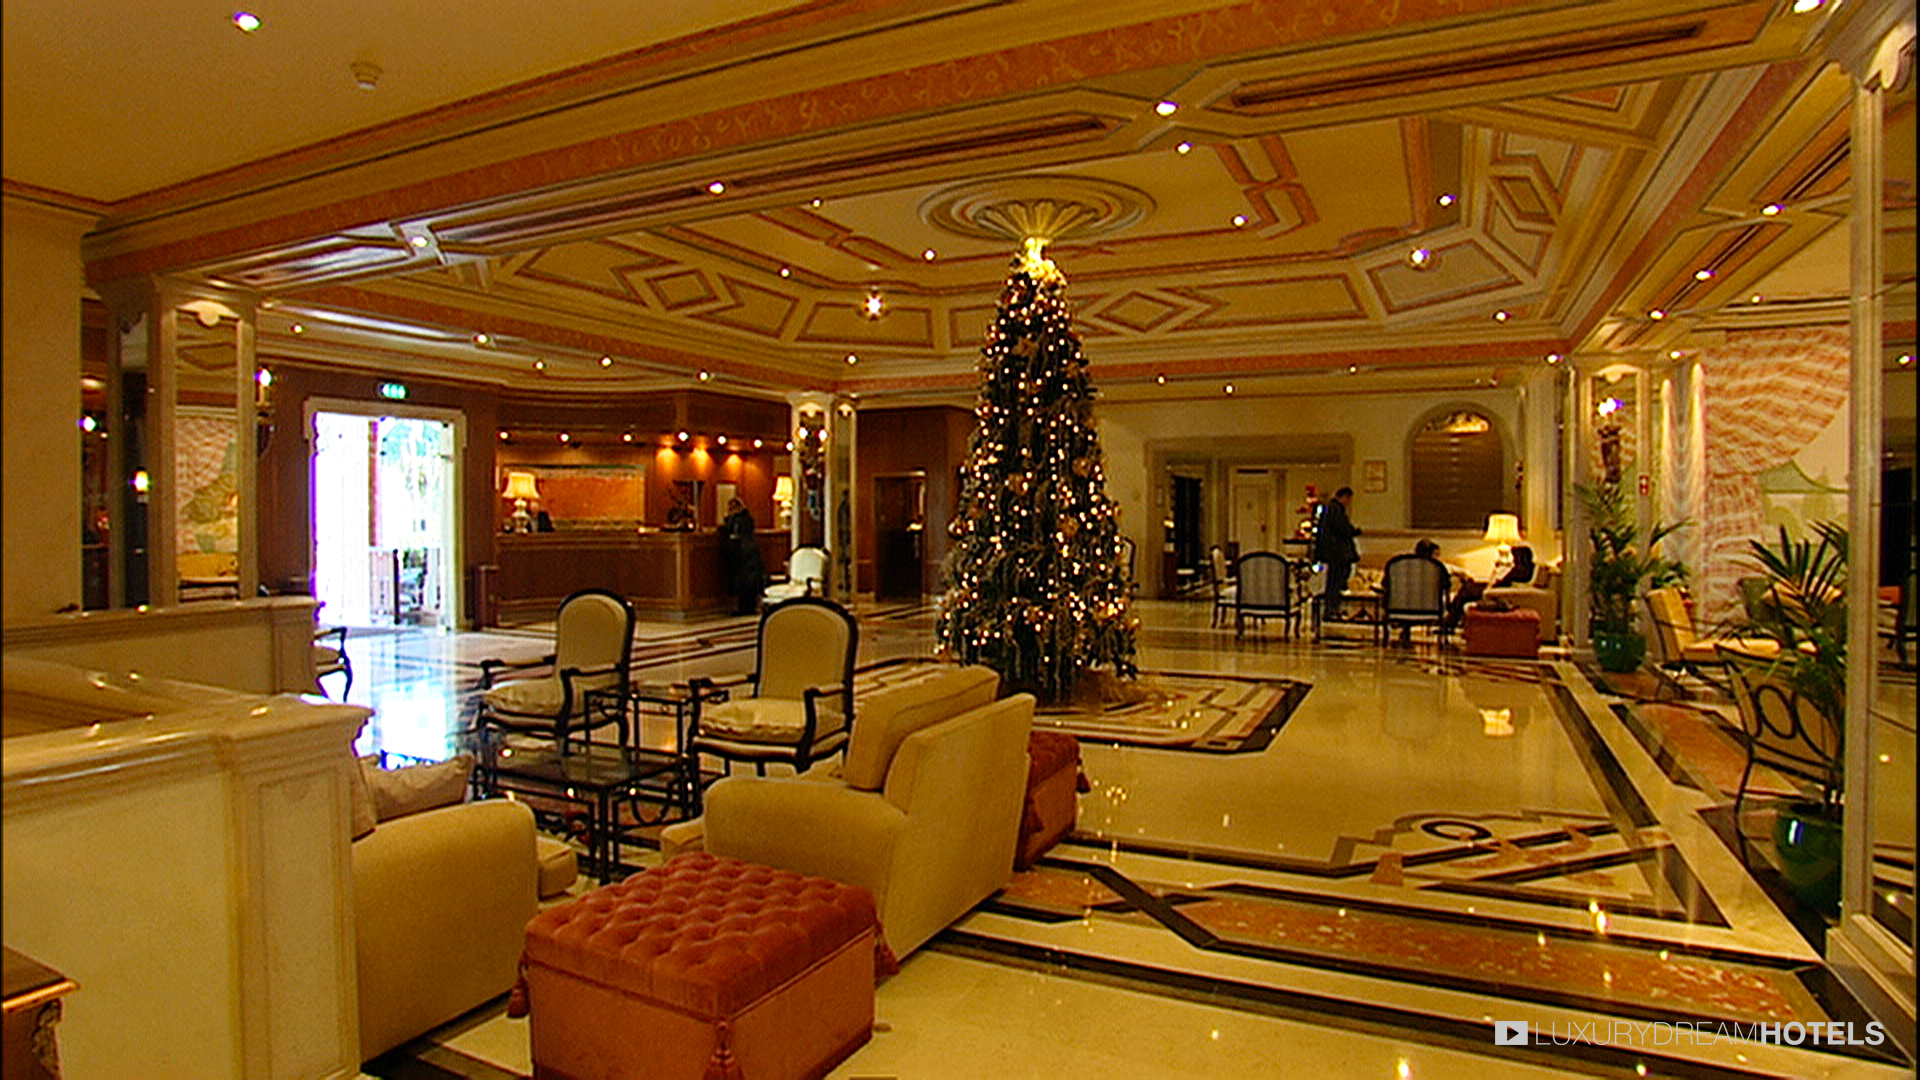 Image gallery luxury palace for Hotel palace